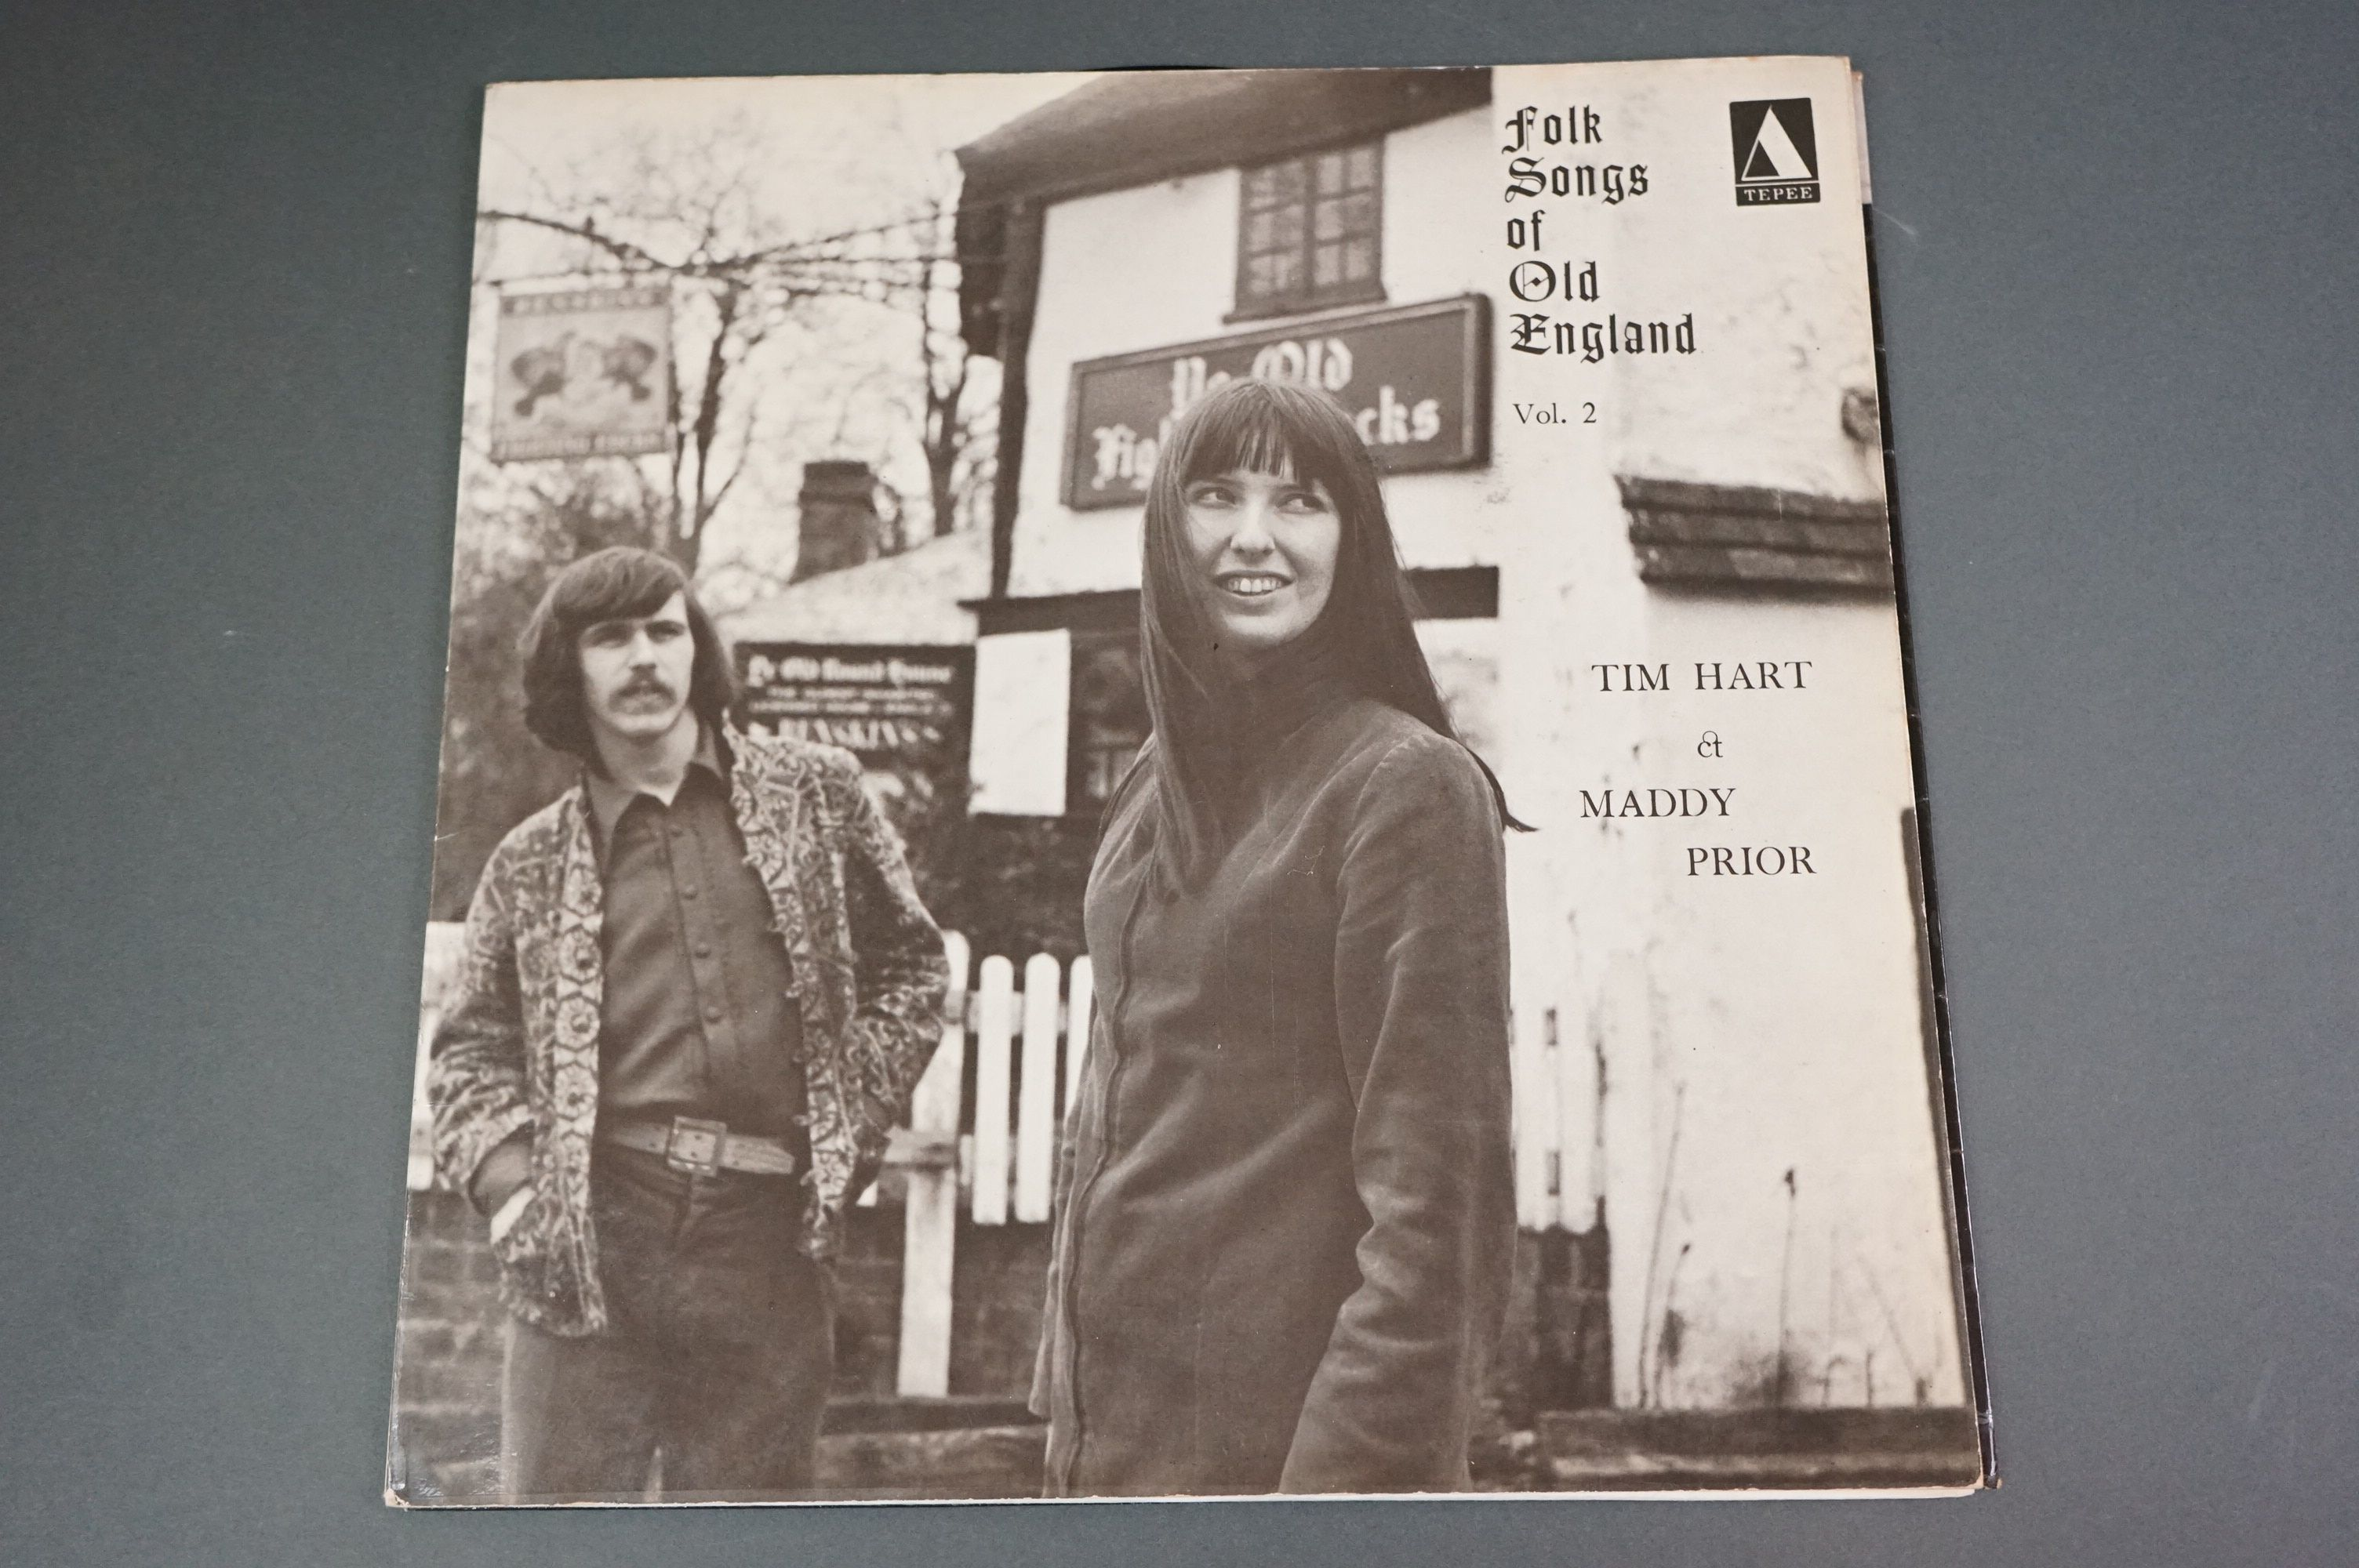 Vinyl - Tim Hart Maddy Prior Folk Songs of Old England vol 2 Tepee105 on Yellow Tepee Label,